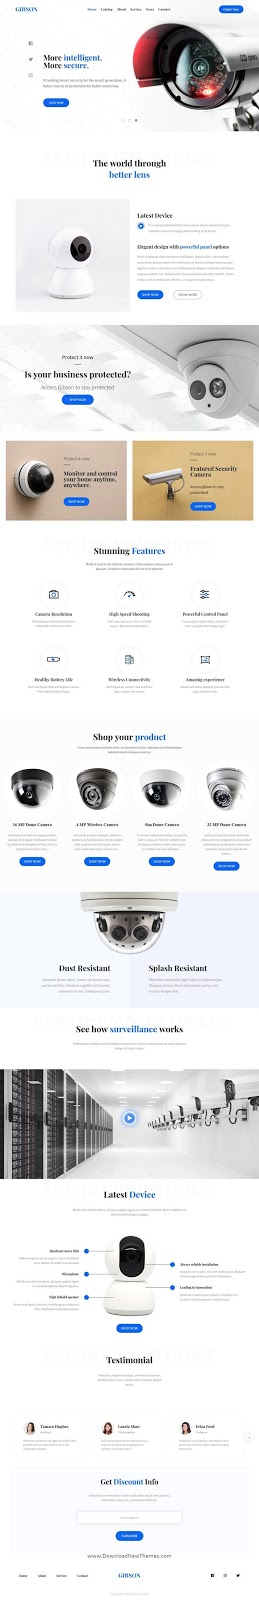 Single Product Shop Shopify Theme